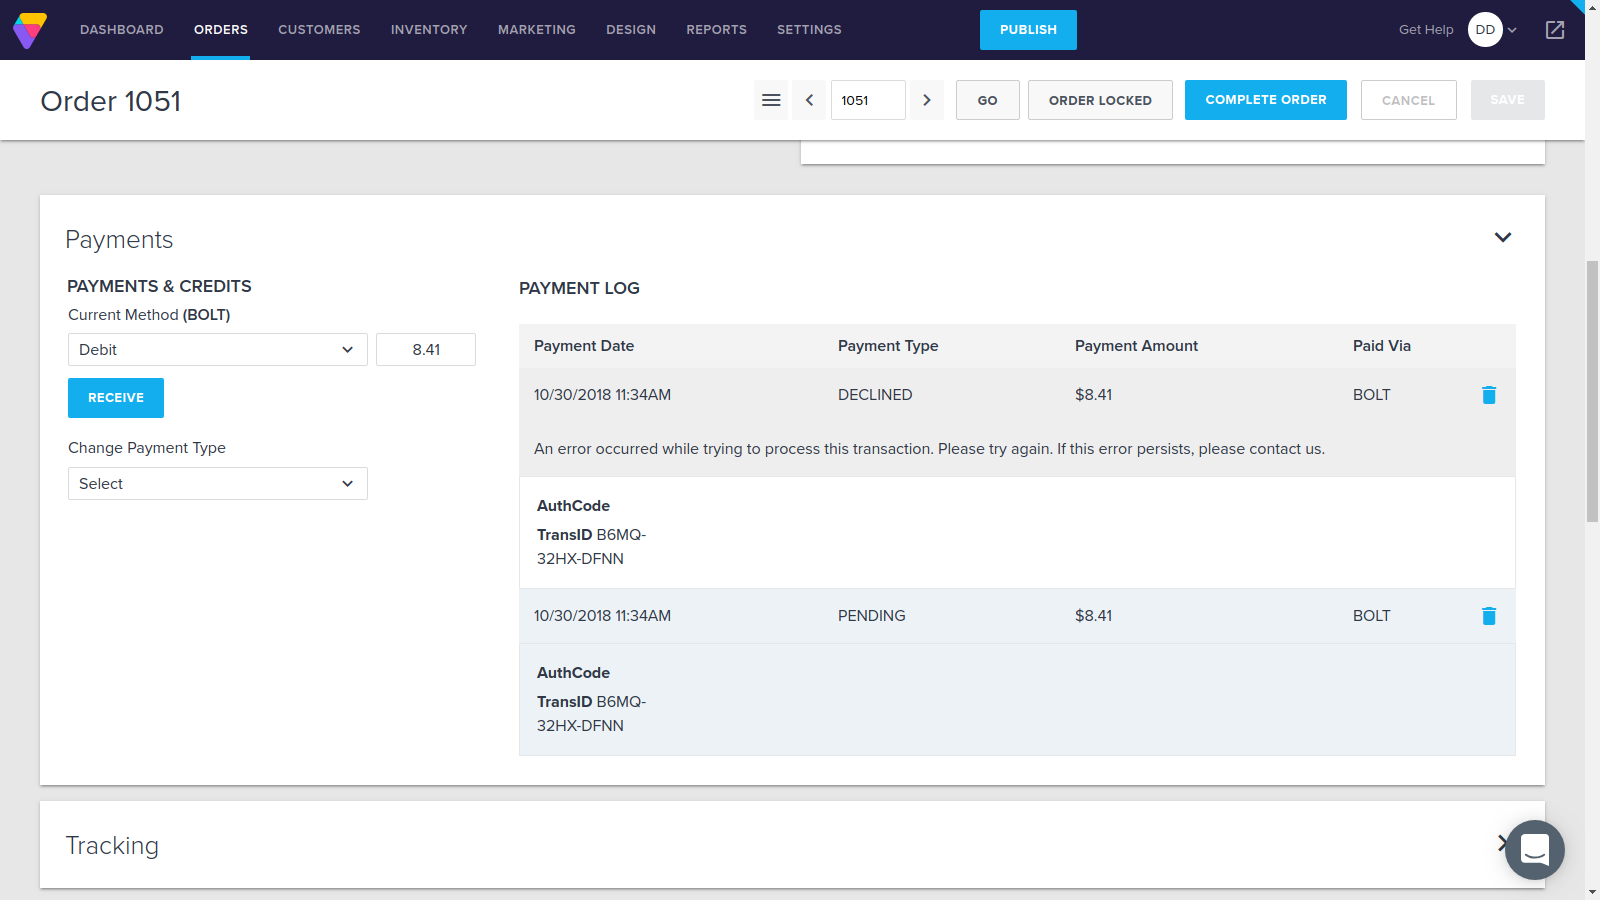 Image 5: PENDING -> DECLINED